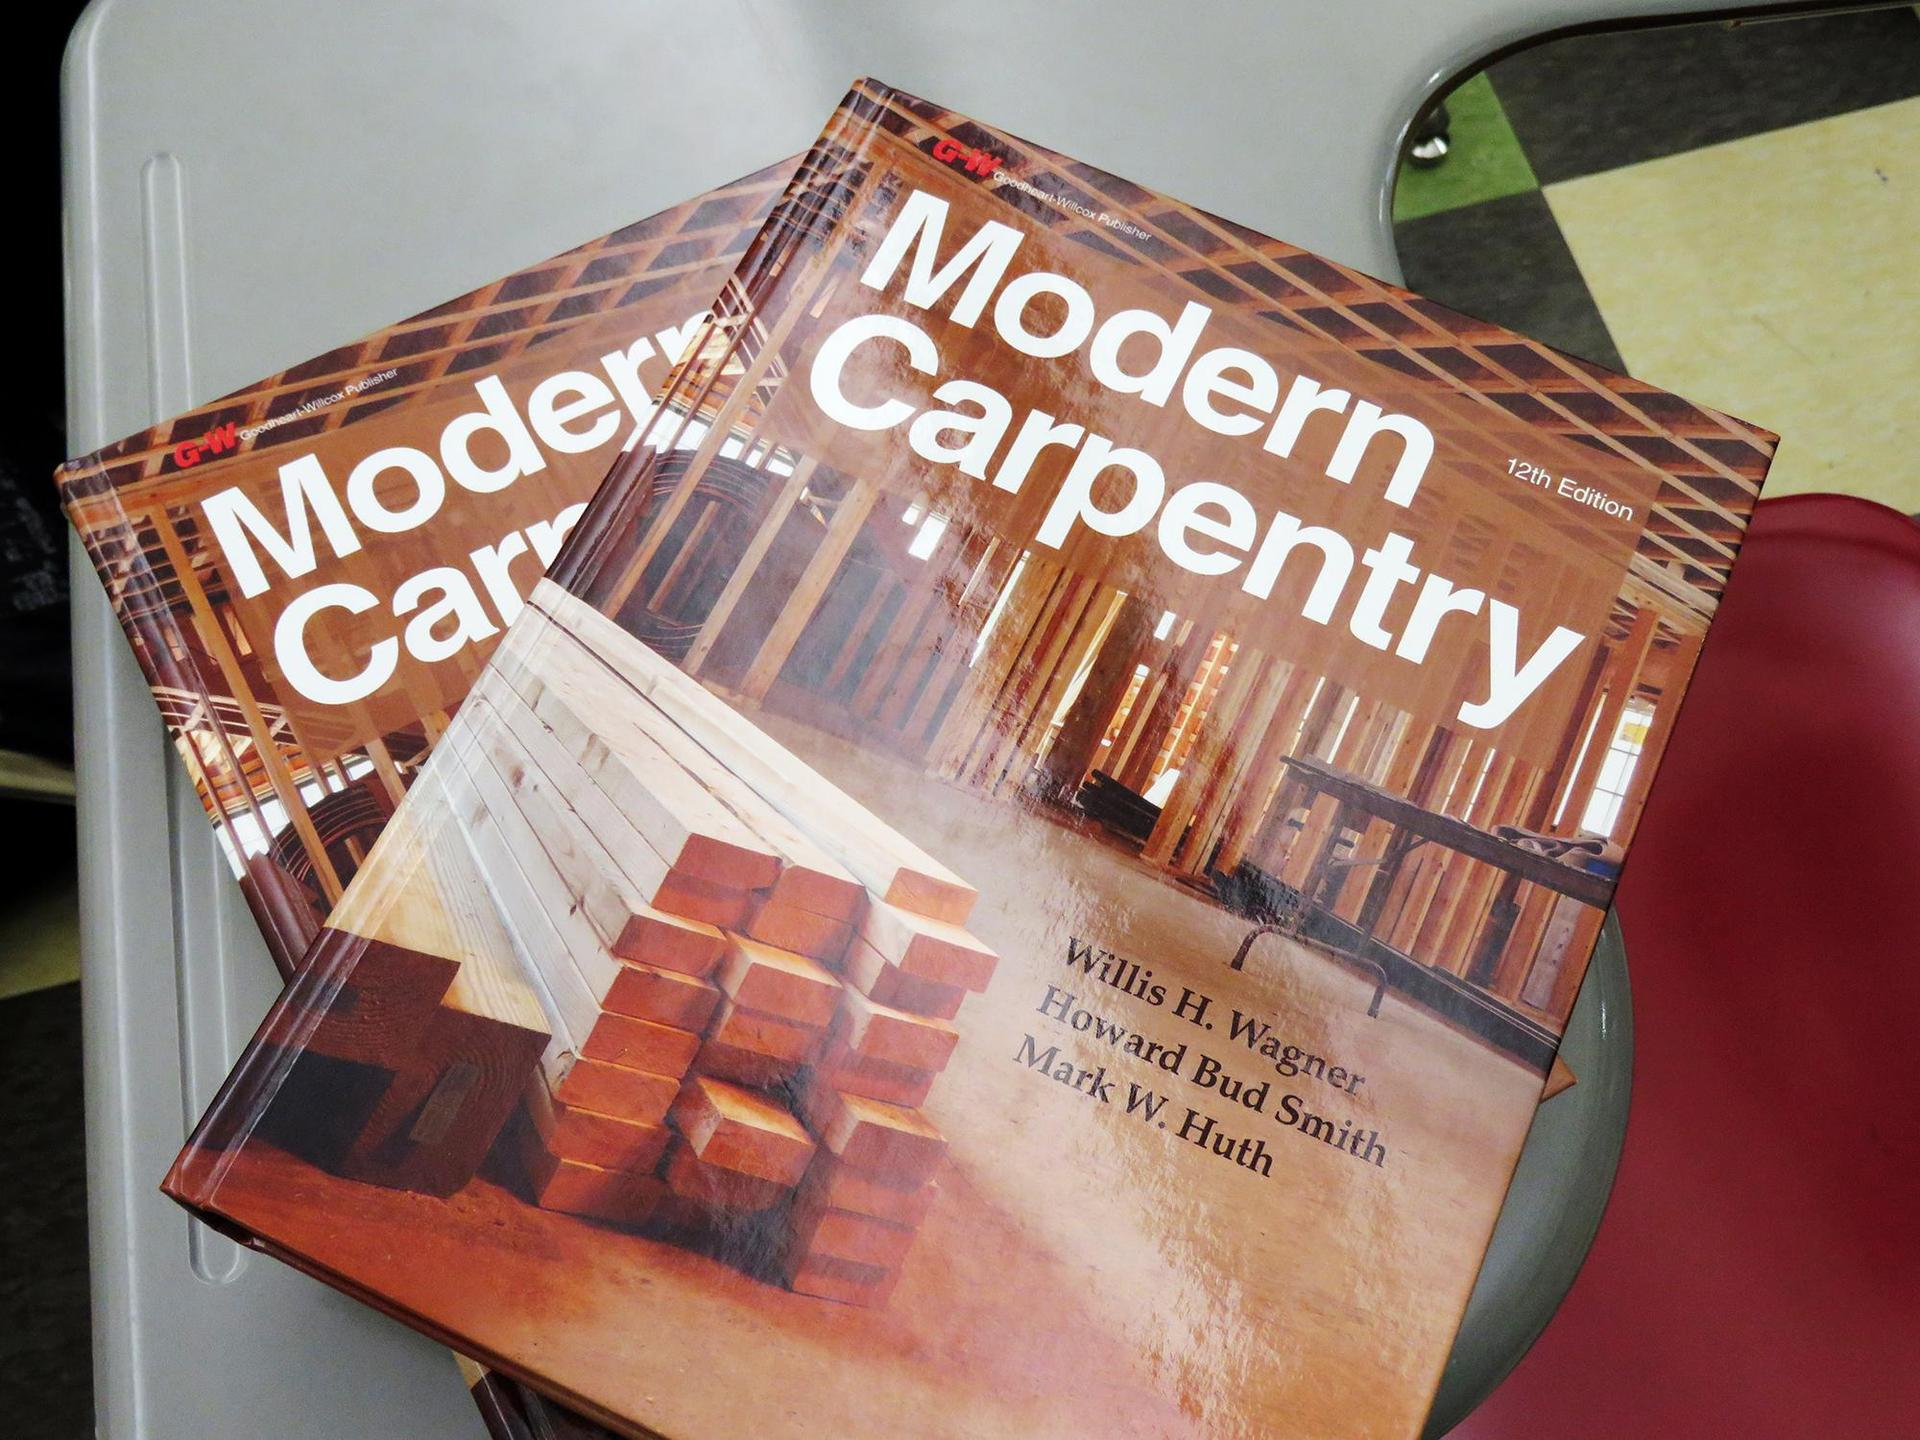 A close-up of two Modern Carpentry textbooks